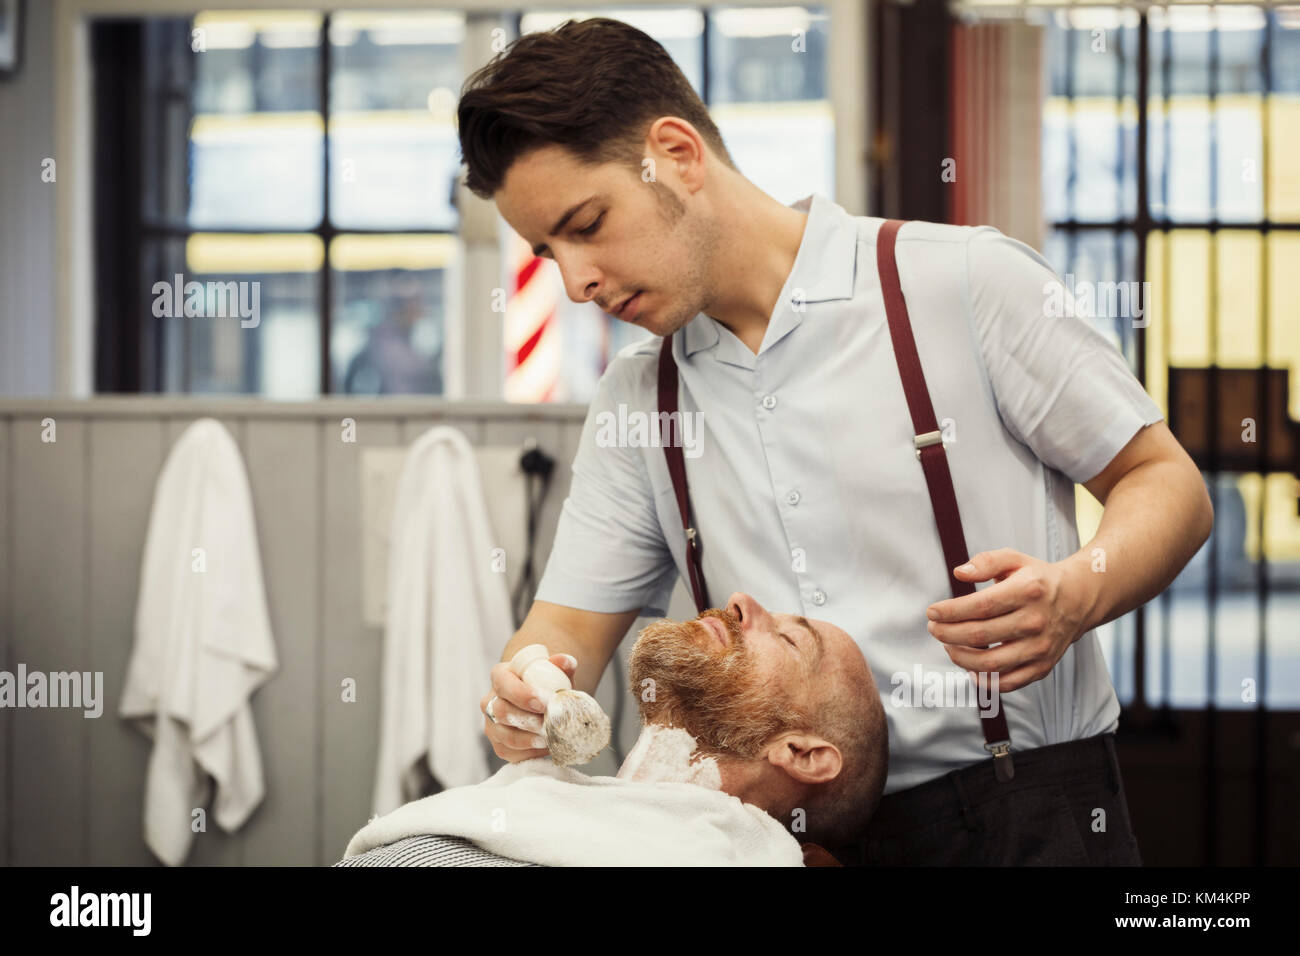 A customer sitting in the barber's chair, having a wet shave. A man using a shaving brush to lather his chin - Stock Image